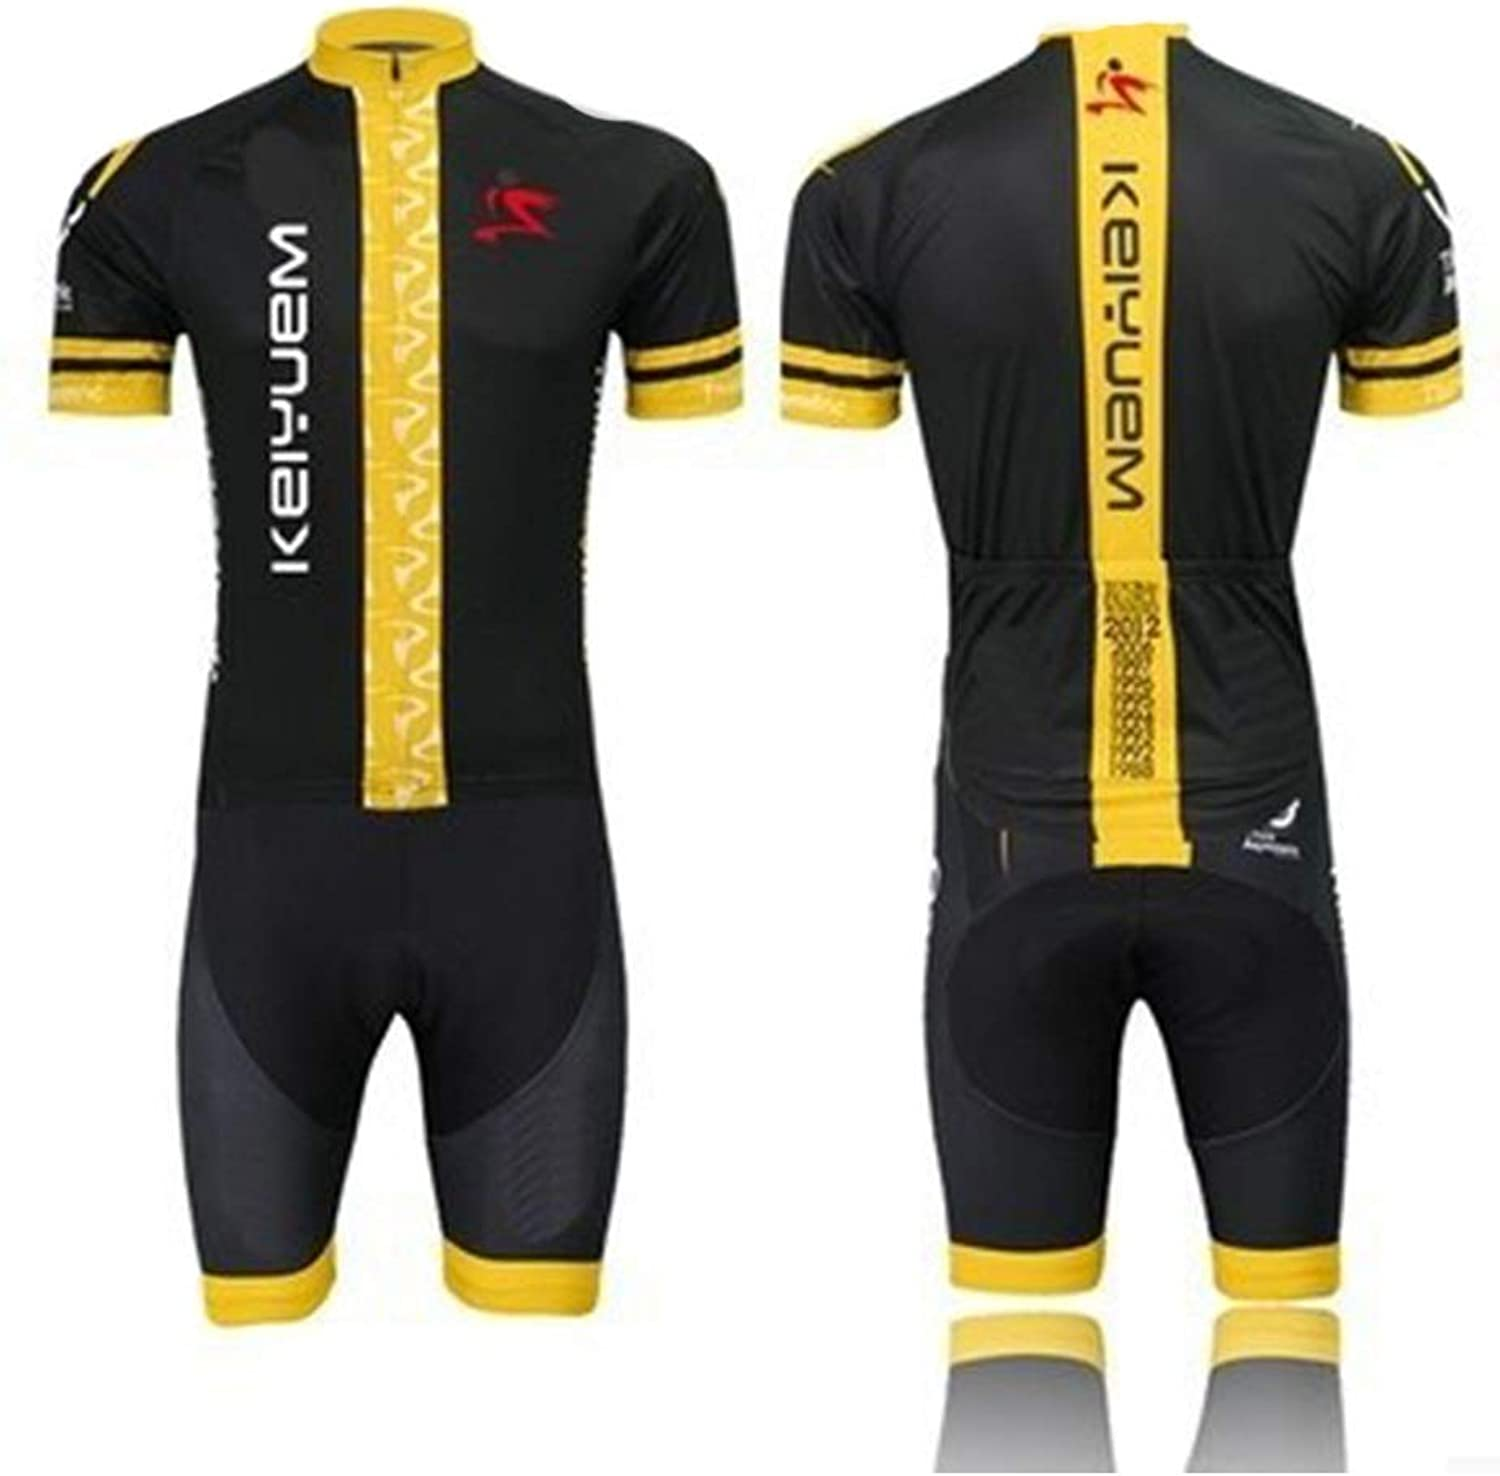 Summer Men and Women Short-Sleeved Jersey Suits Bicycle Mountain Wheel Slippery (color   4, Size   XL)